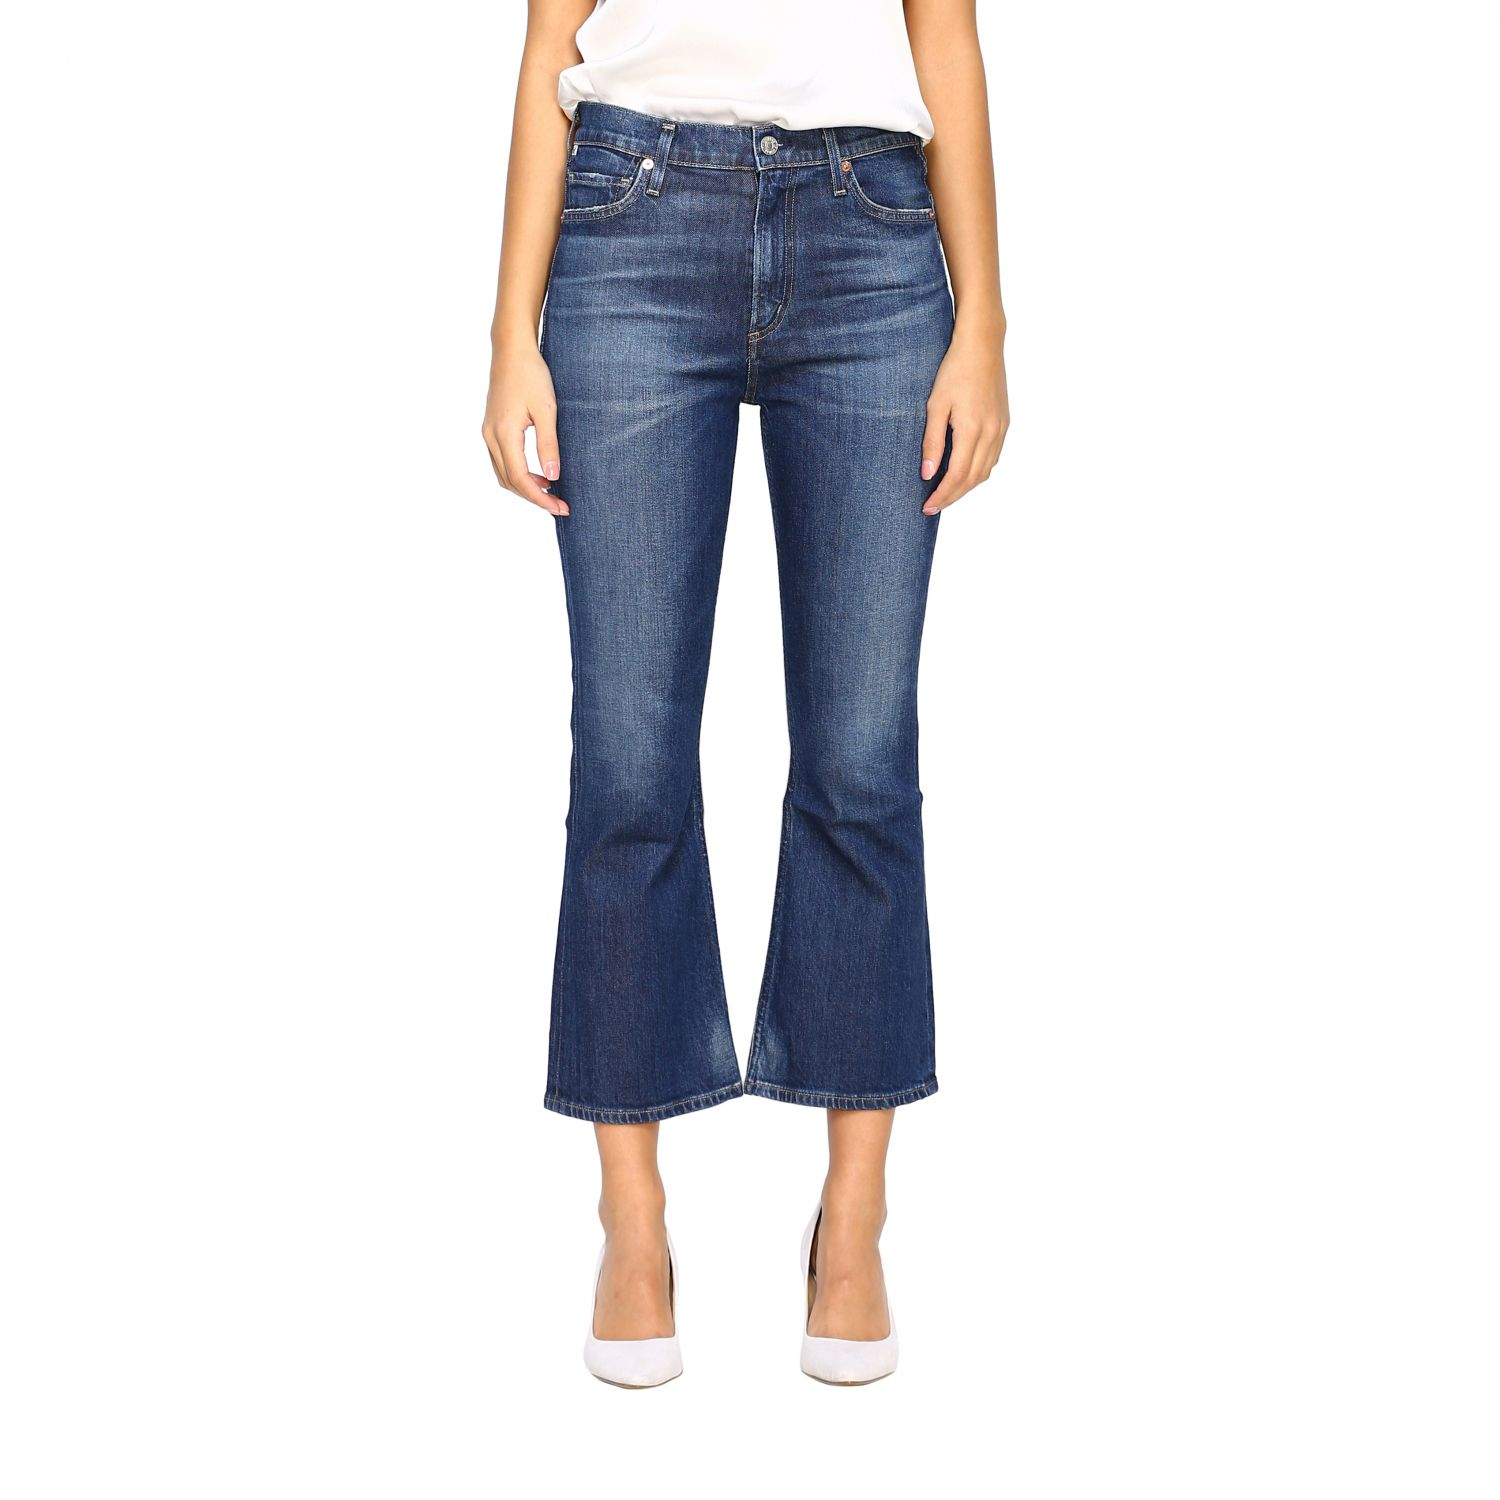 Jeans Citizens Of Humanity: Jeans femme Citizens Of Humanity bleu 1